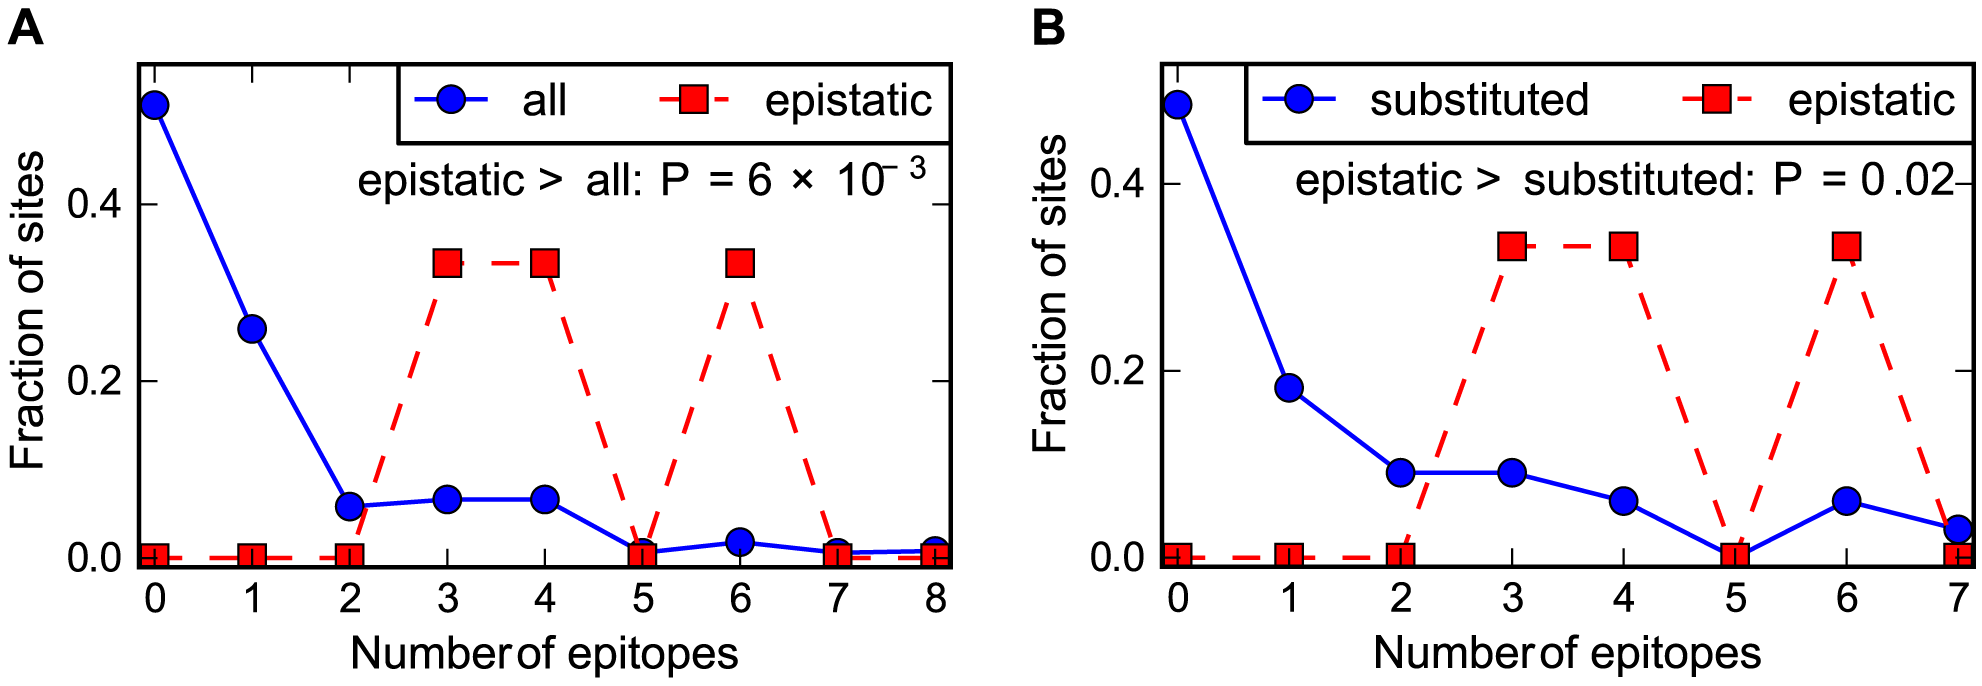 Epistasis in human NP occurs at sites enriched in CTL epitopes.